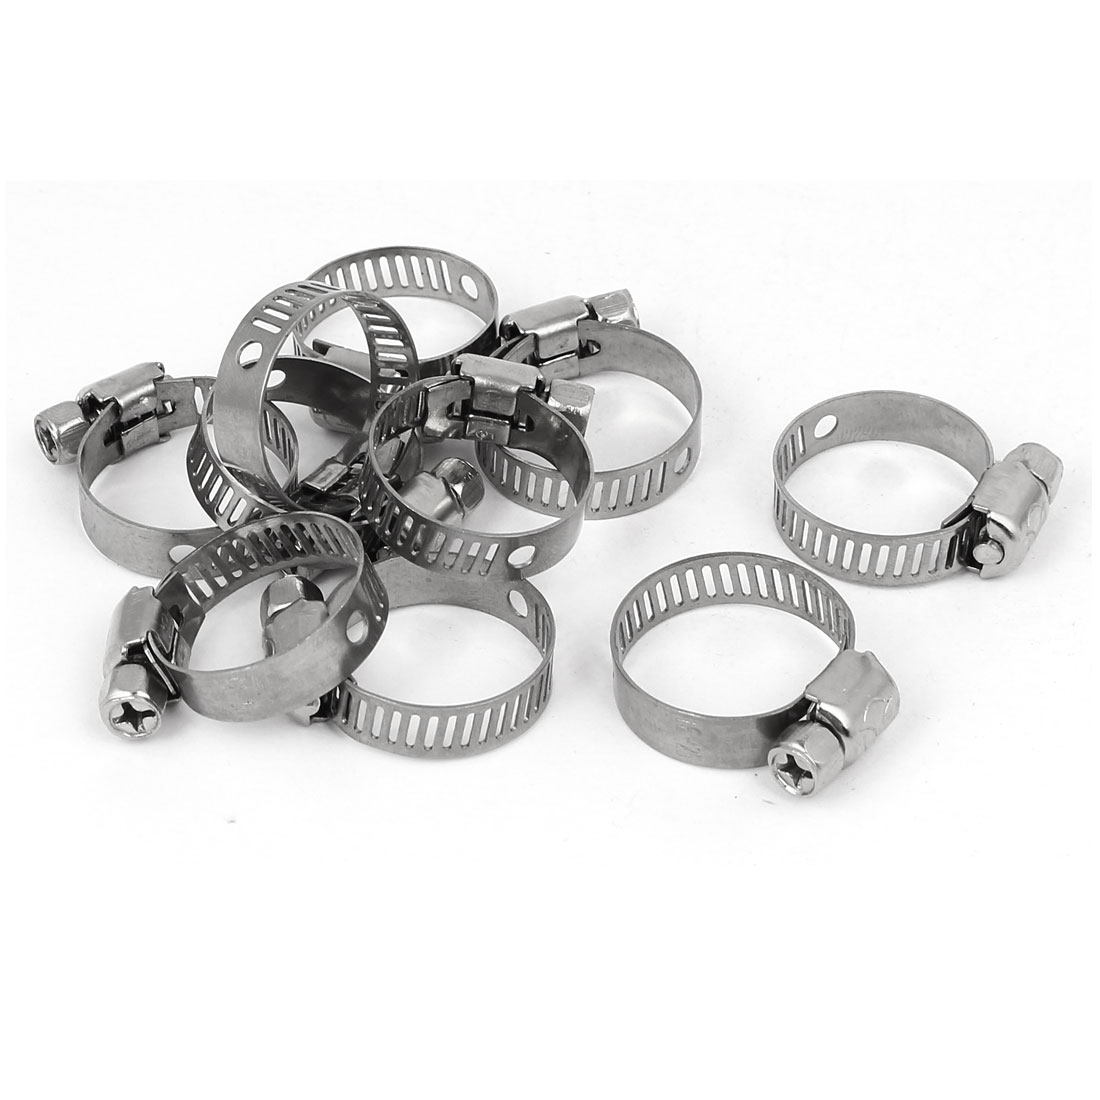 Cable Pipe Fitting Adjustable Worm Gear Hose Clamp Silver Tone 16-25mm 10pcs